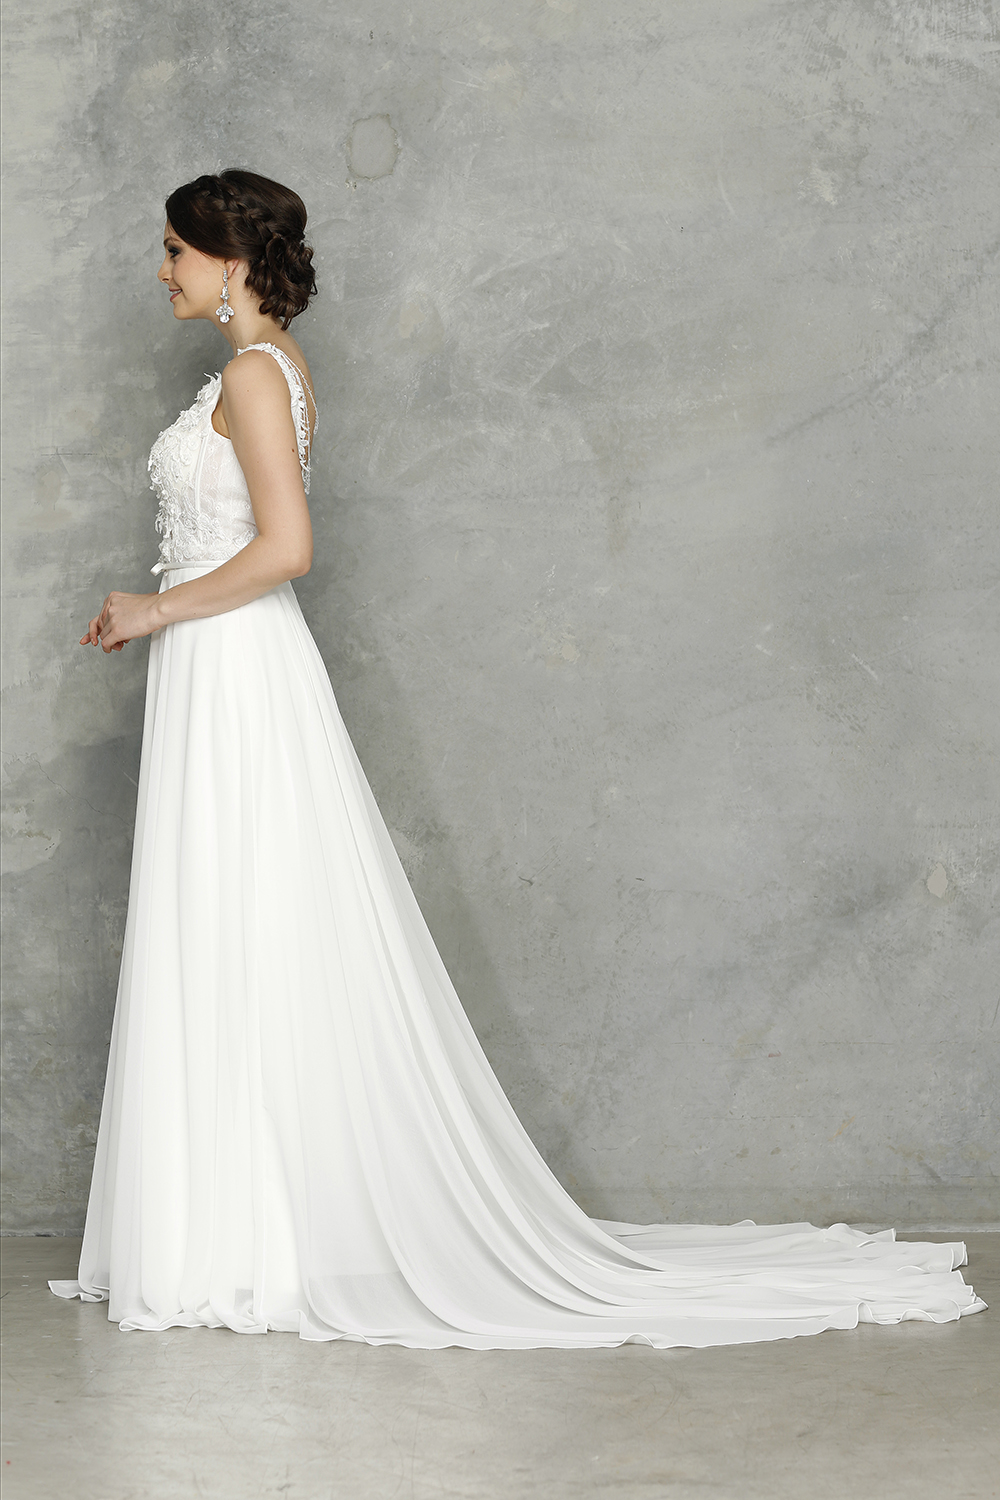 Chanel Wedding dress side